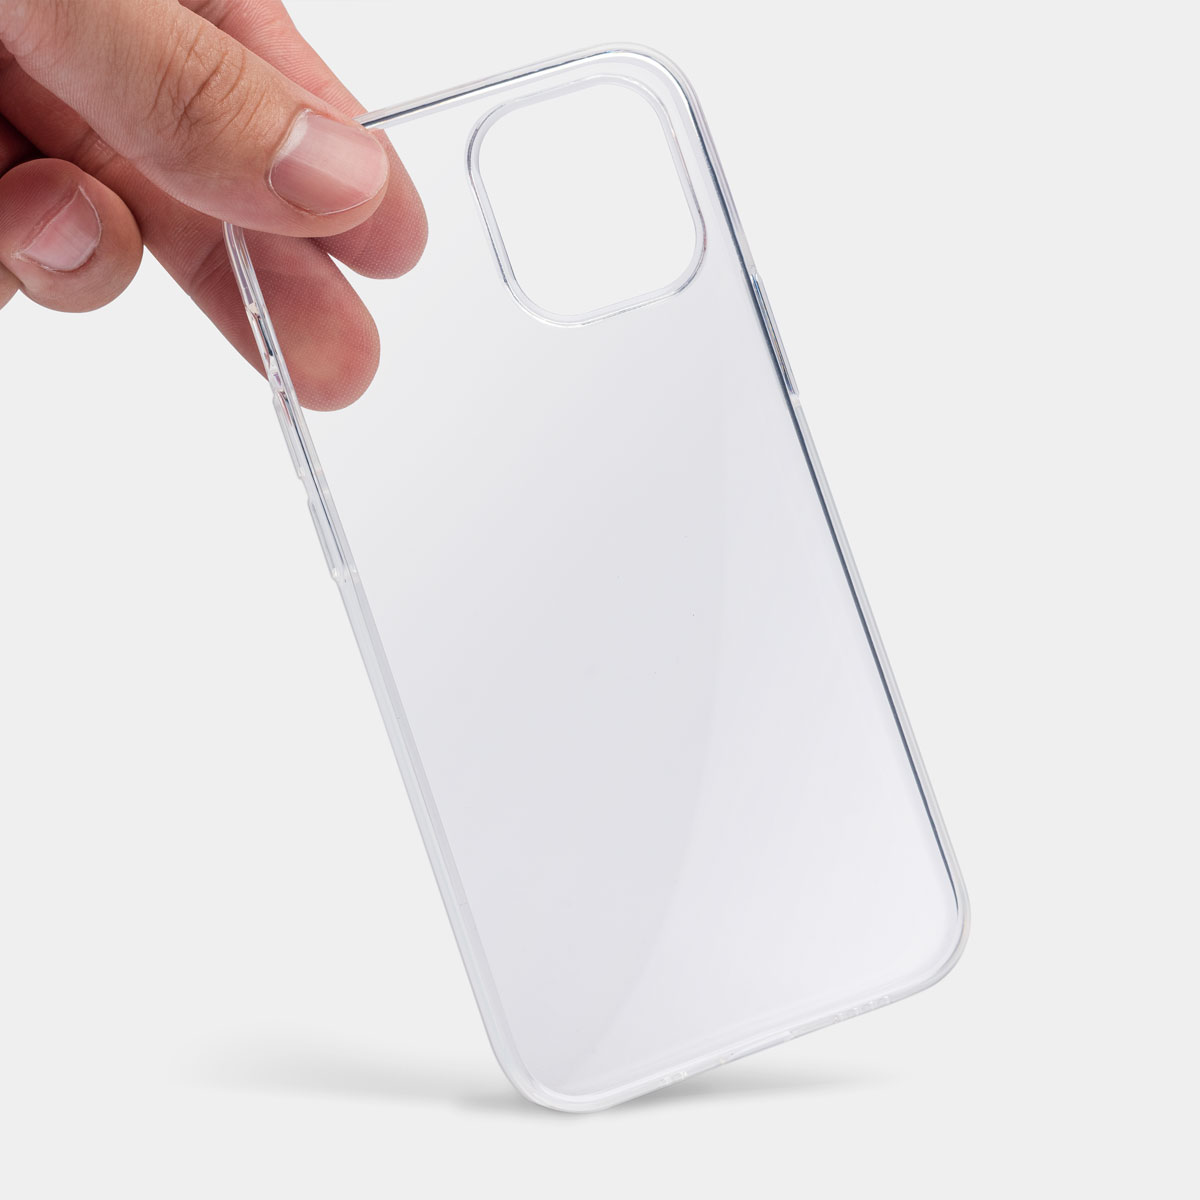 Hands-on with iPhone 12 and iPhone 12 Pro cases